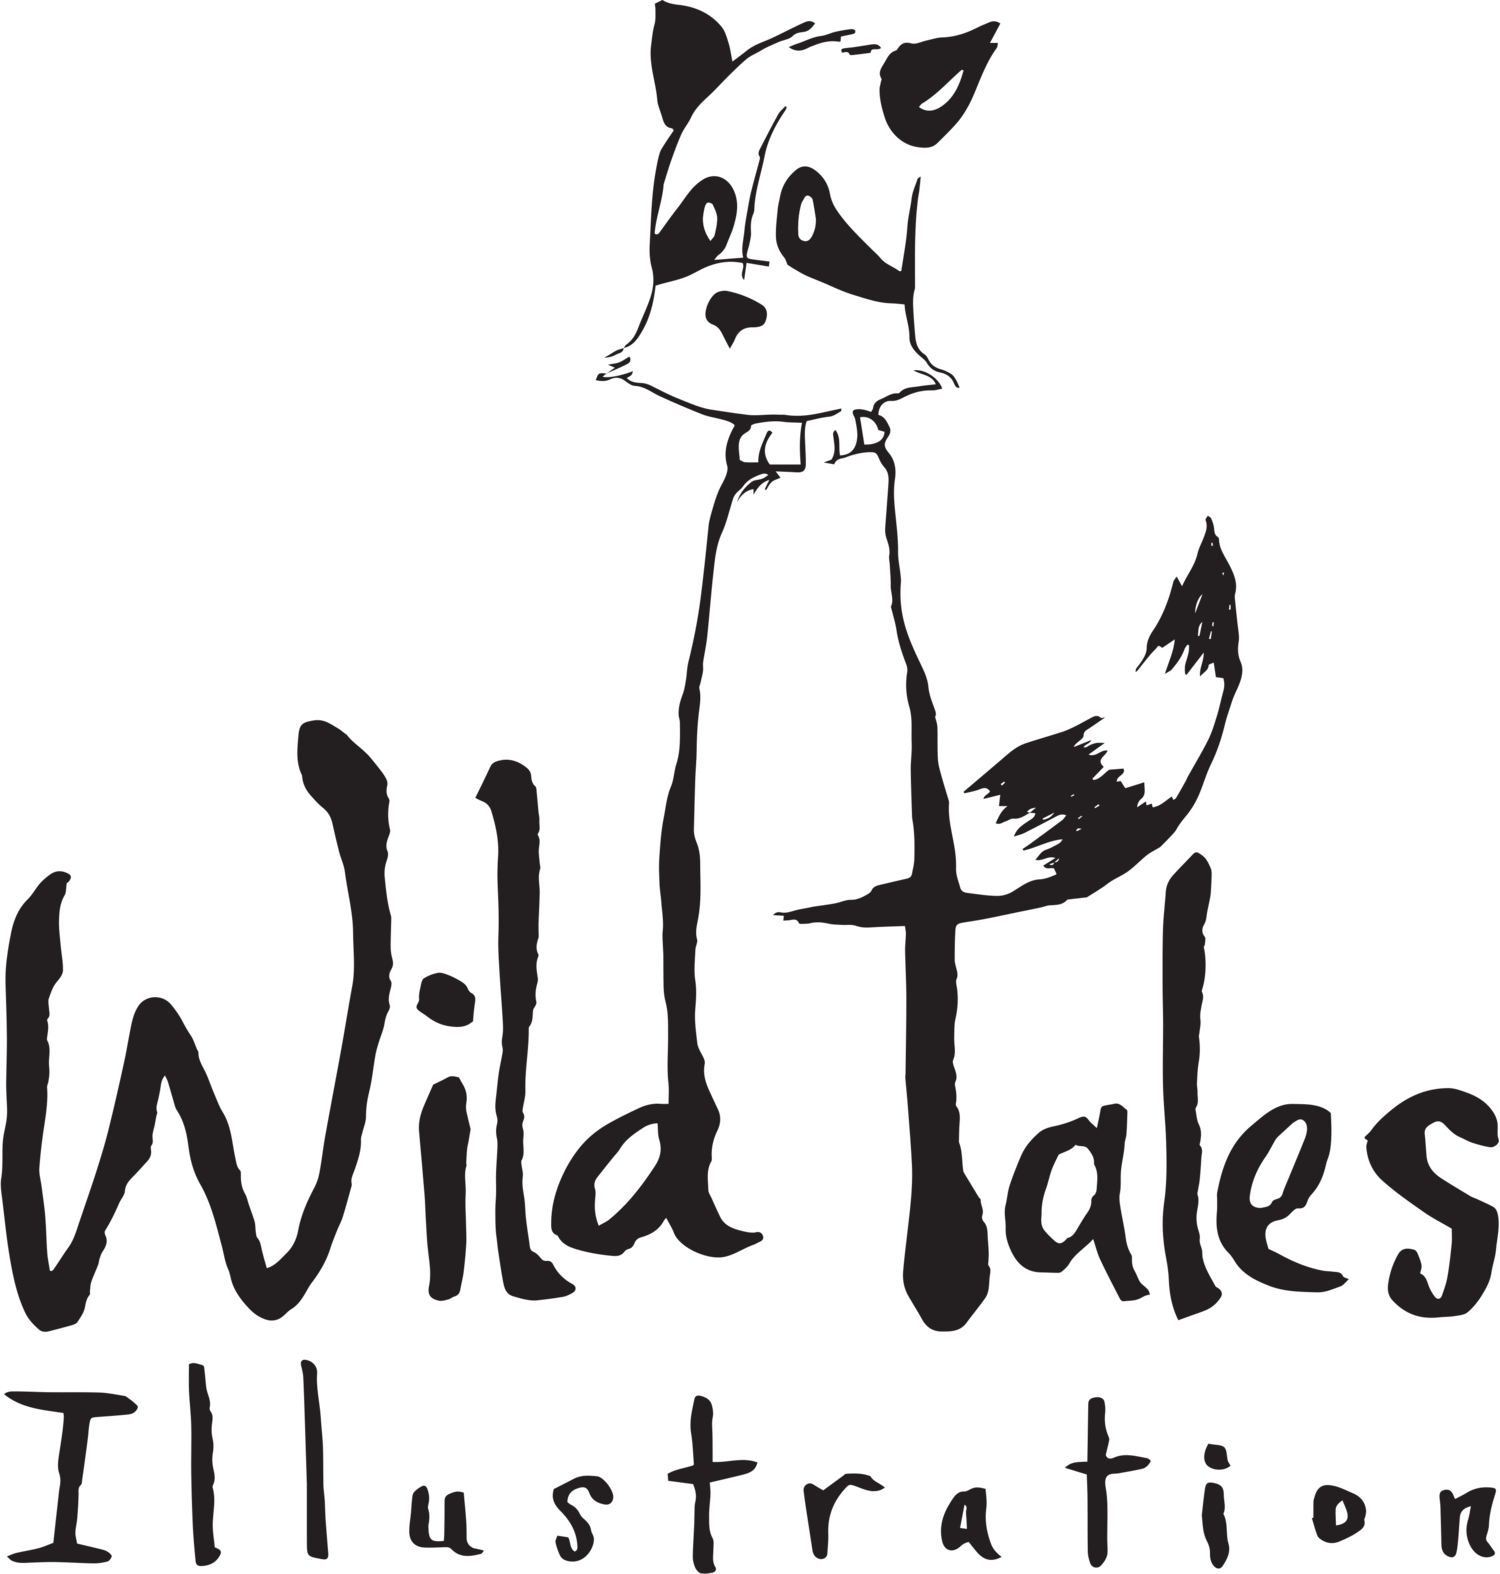 007 Movie Poster Wild Tales Illustration